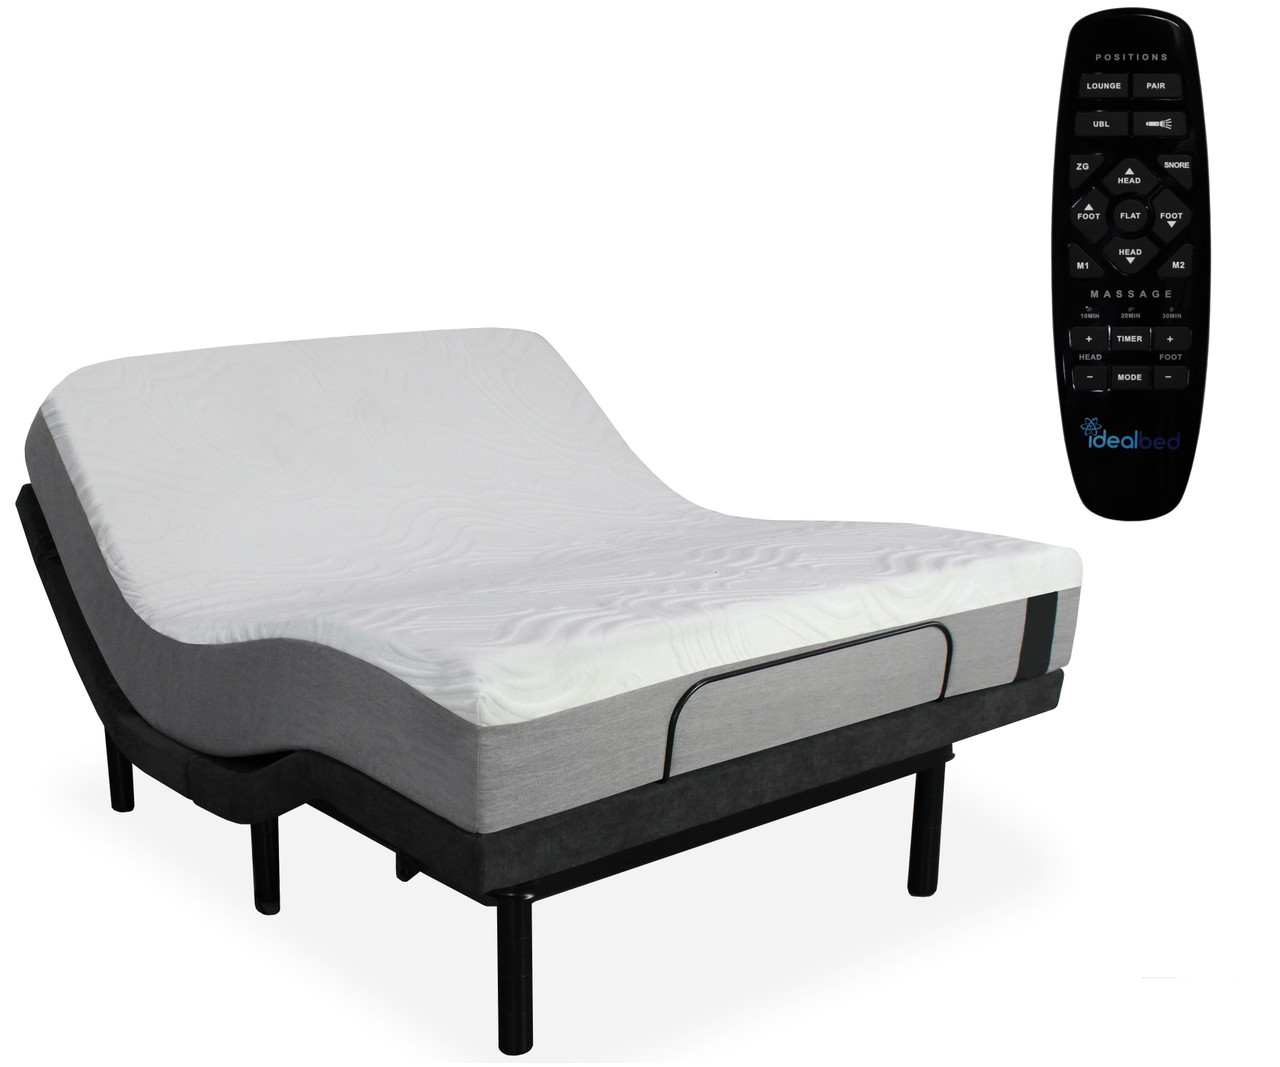 Idealbed I2 Gel Memory Foam Mattress With 4i Adjustable Bed Sleep System Dealbeds Com